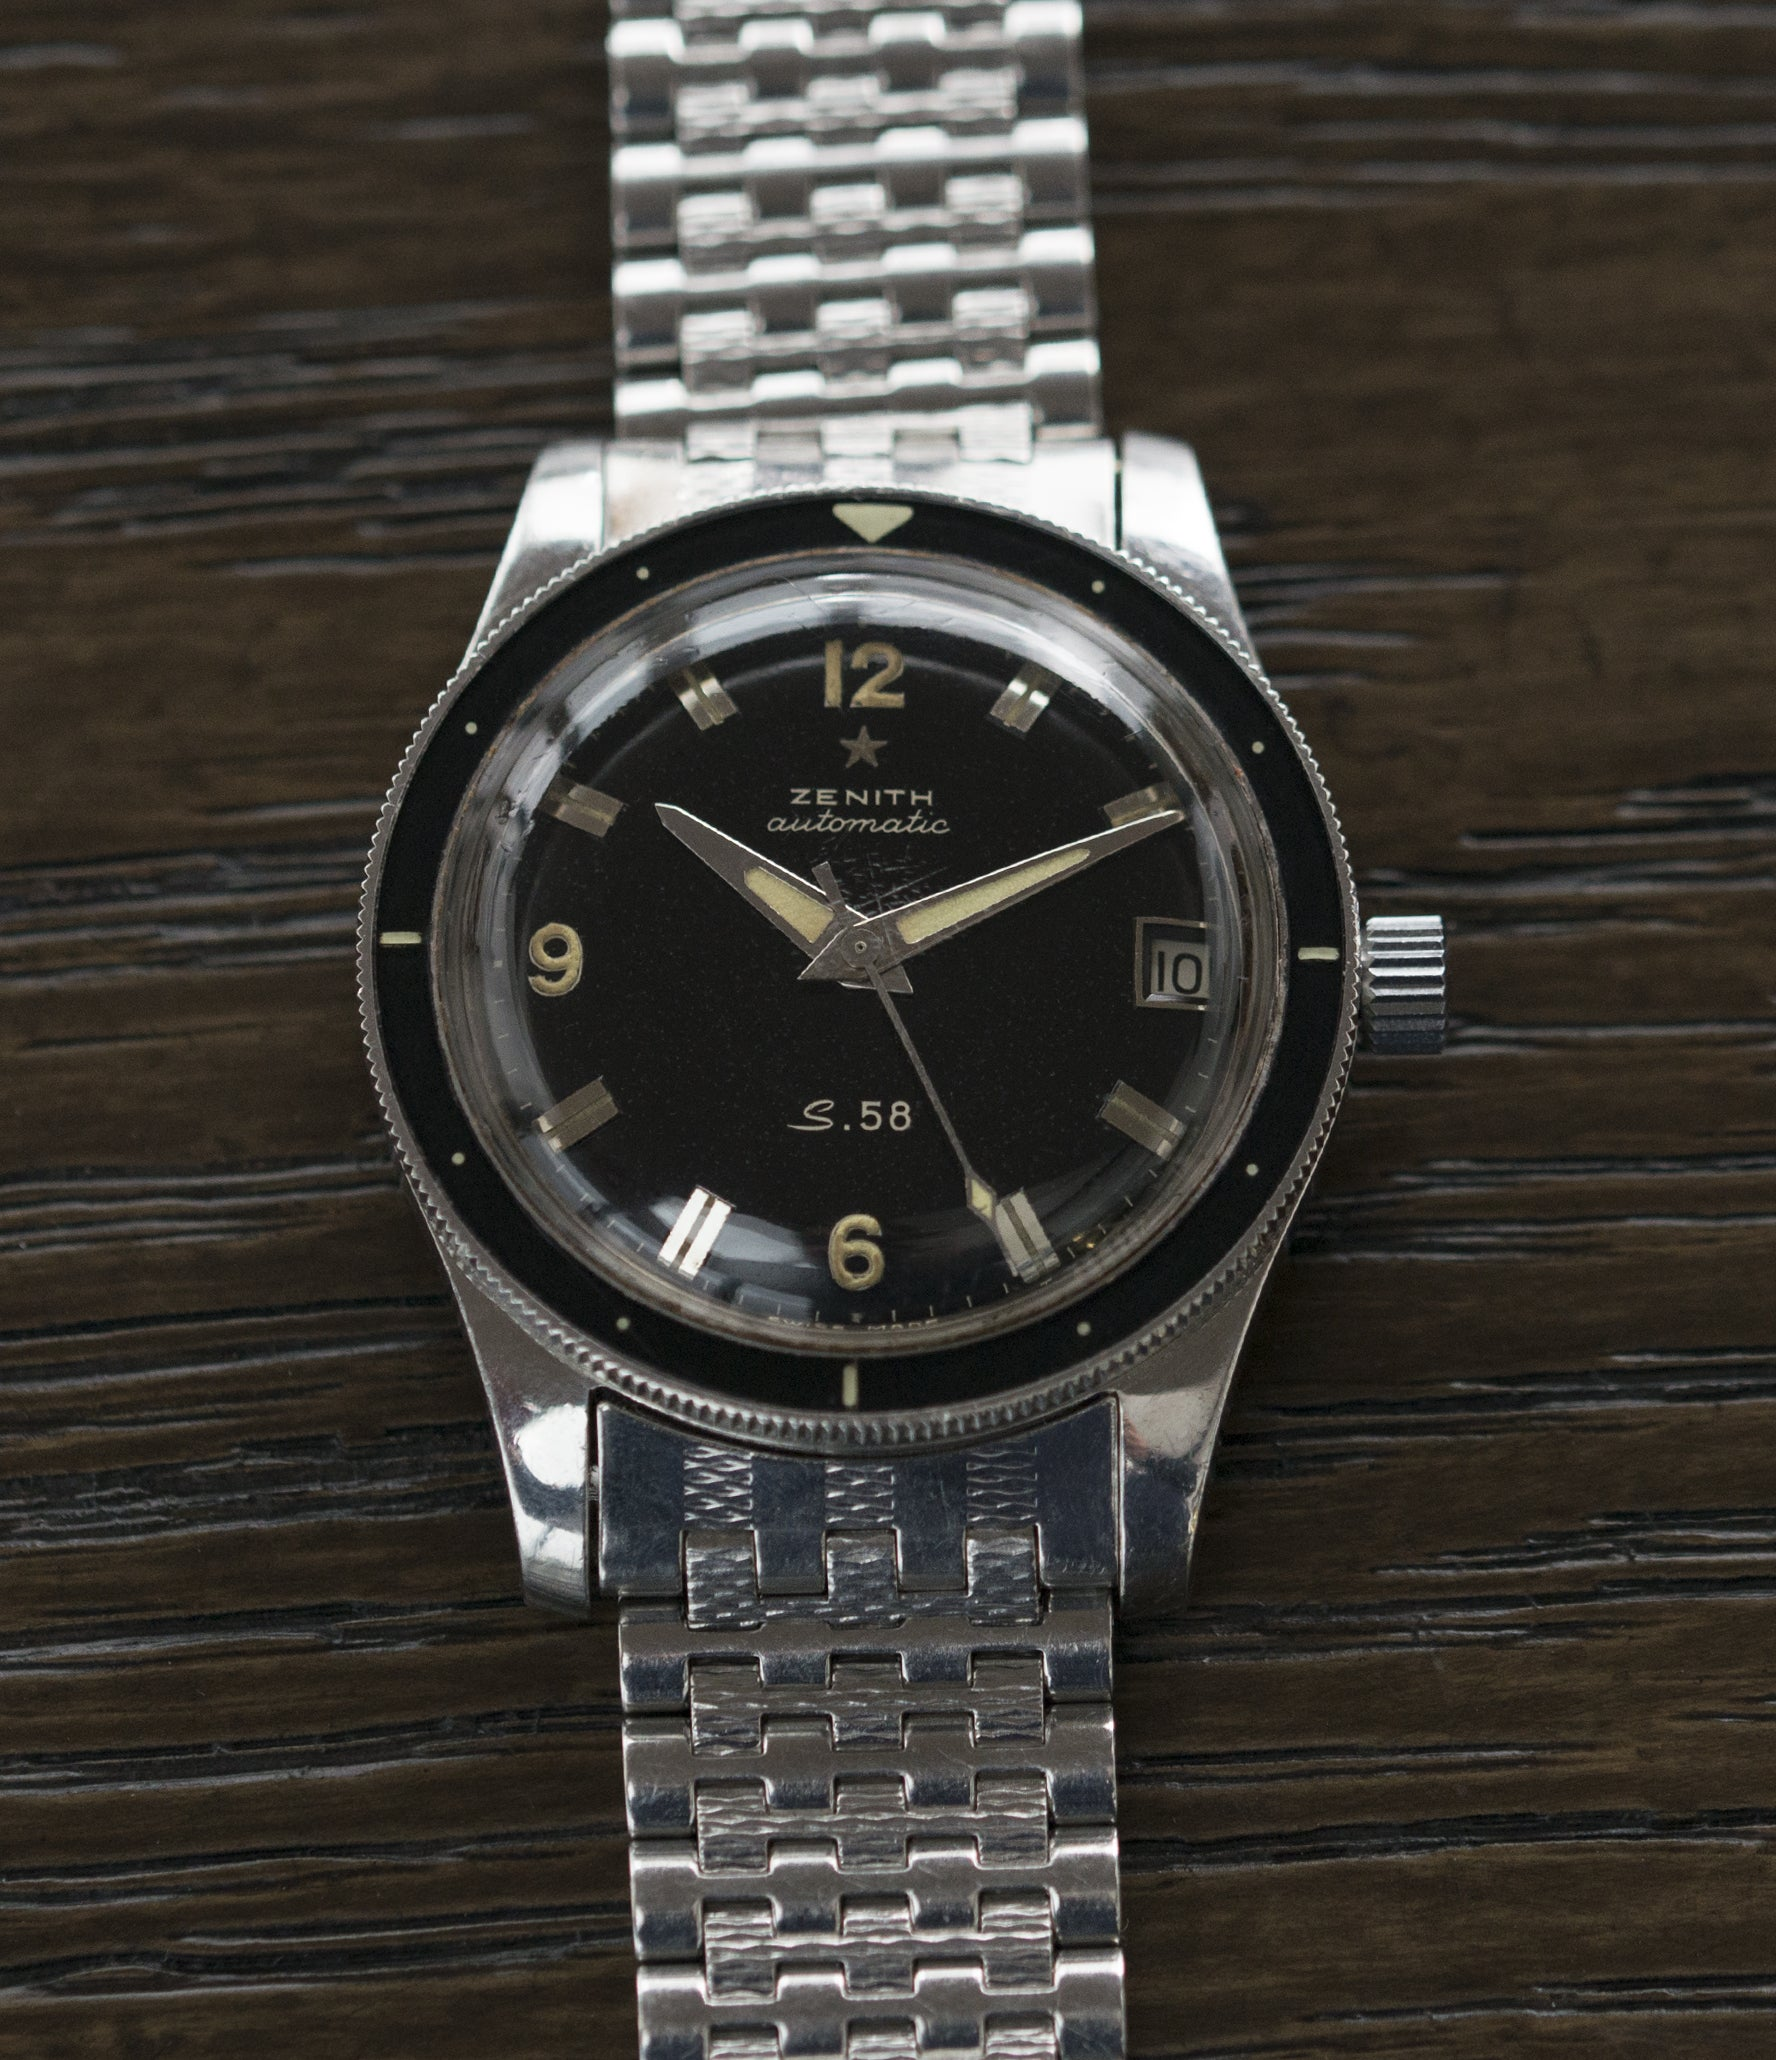 vintage diving watch S.58 Zenith Cal 2542 PC vintage steel divers watch bakelite bezel for sale online at A Collected Man London UK specialist rare vintage watches